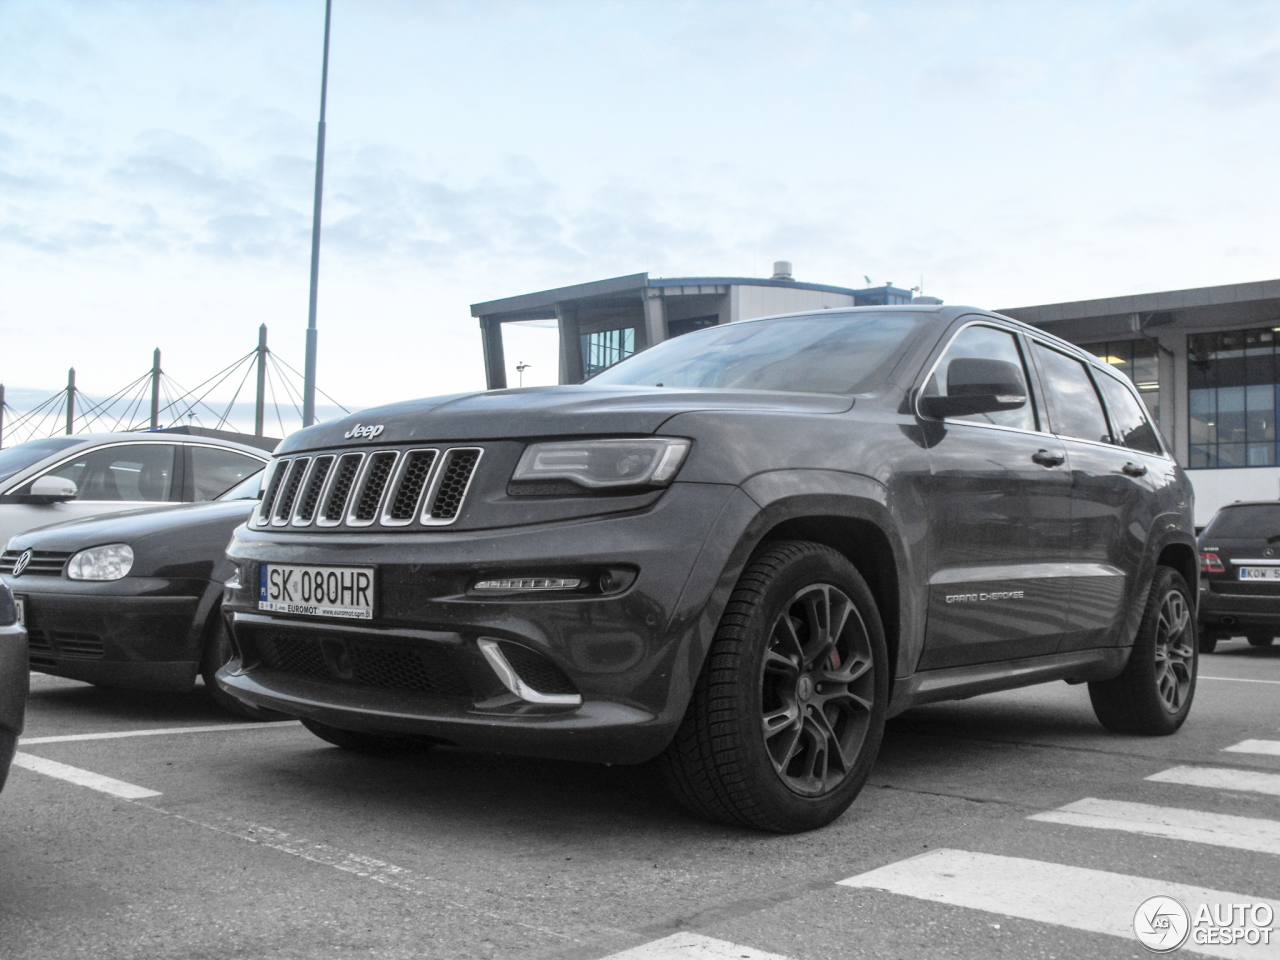 jeep grand cherokee srt 8 2013 17 february 2017 autogespot. Black Bedroom Furniture Sets. Home Design Ideas